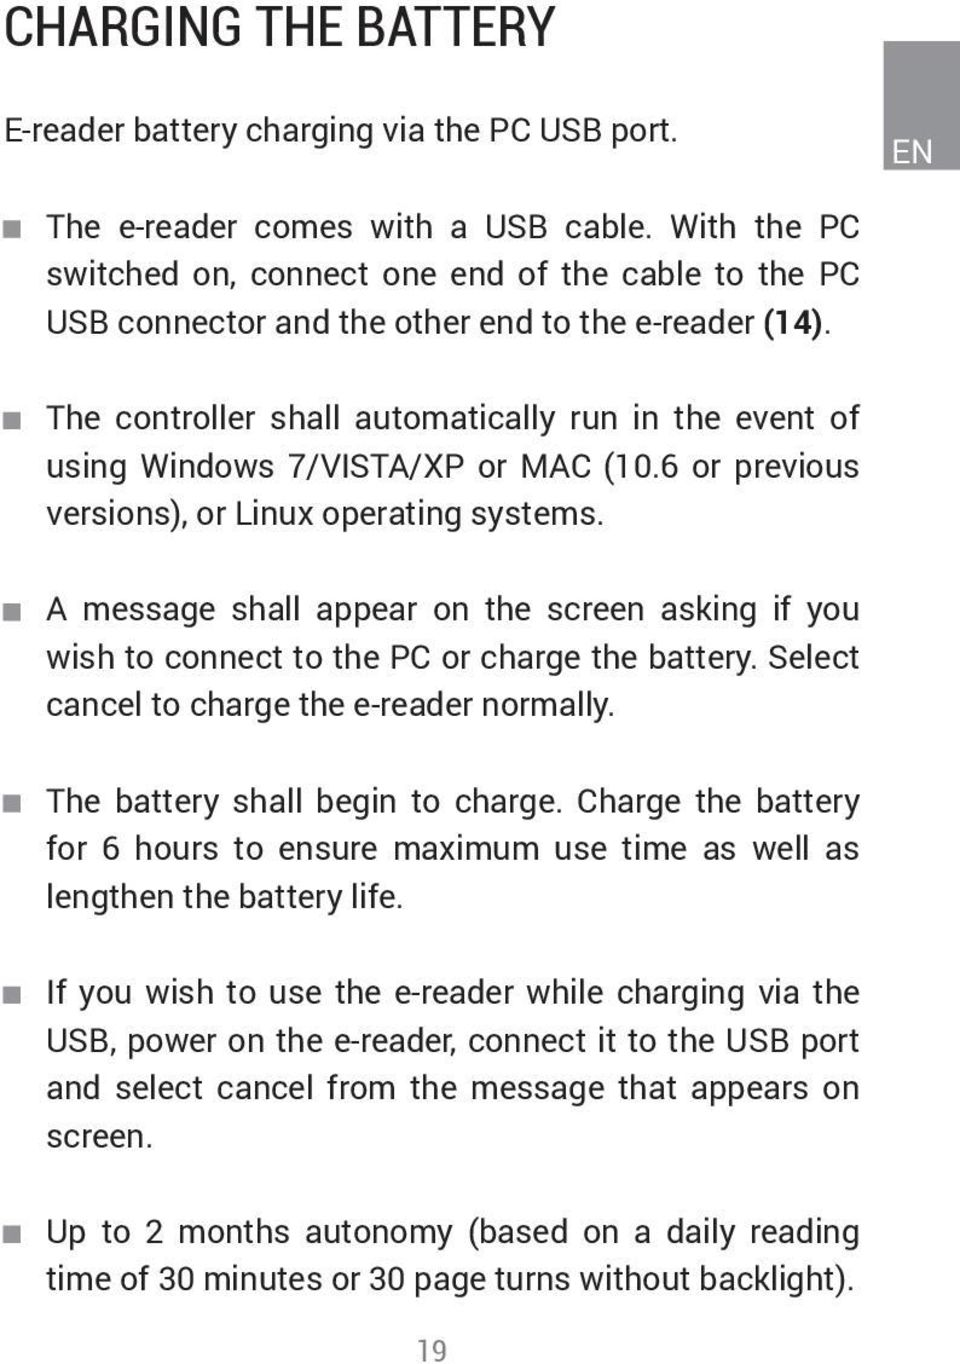 The controller shall automatically run in the event of using Windows 7/VISTA/XP or MAC (10.6 or previous versions), or Linux operating systems.